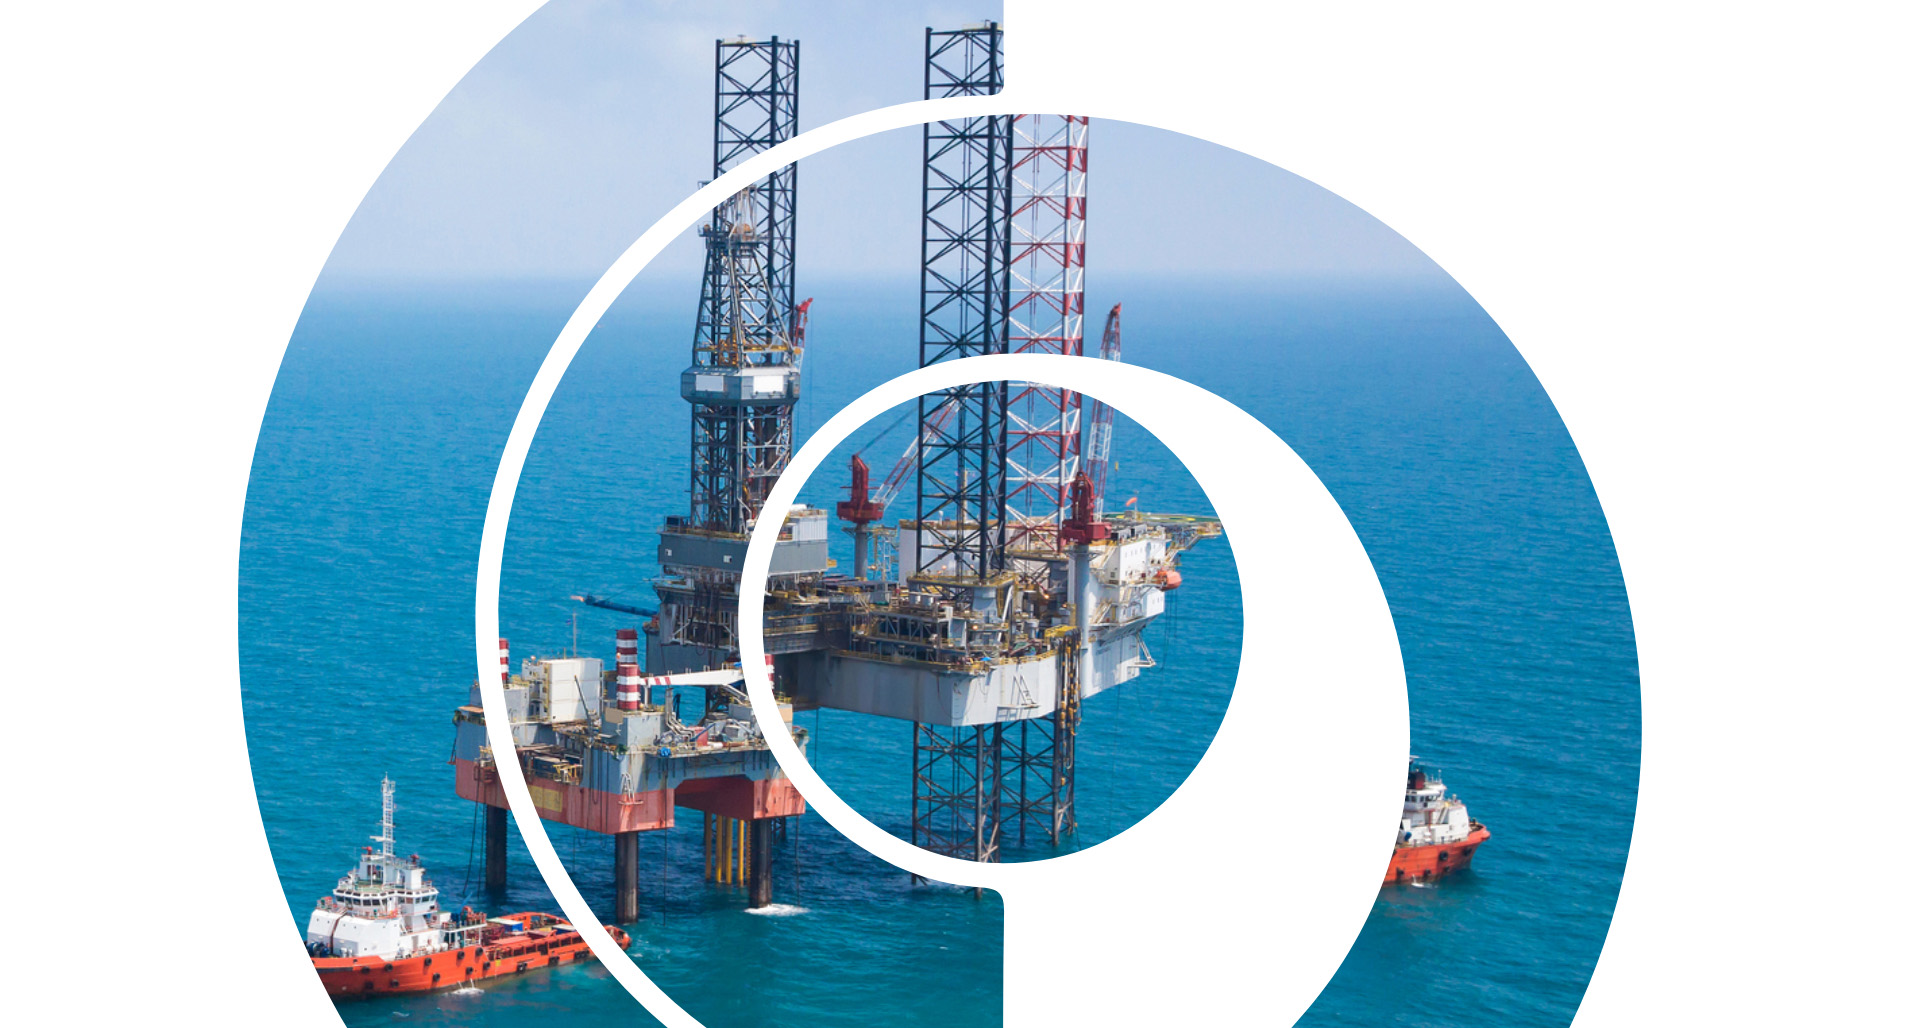 Offshore rig within Forth and Tay Decommissioning logo